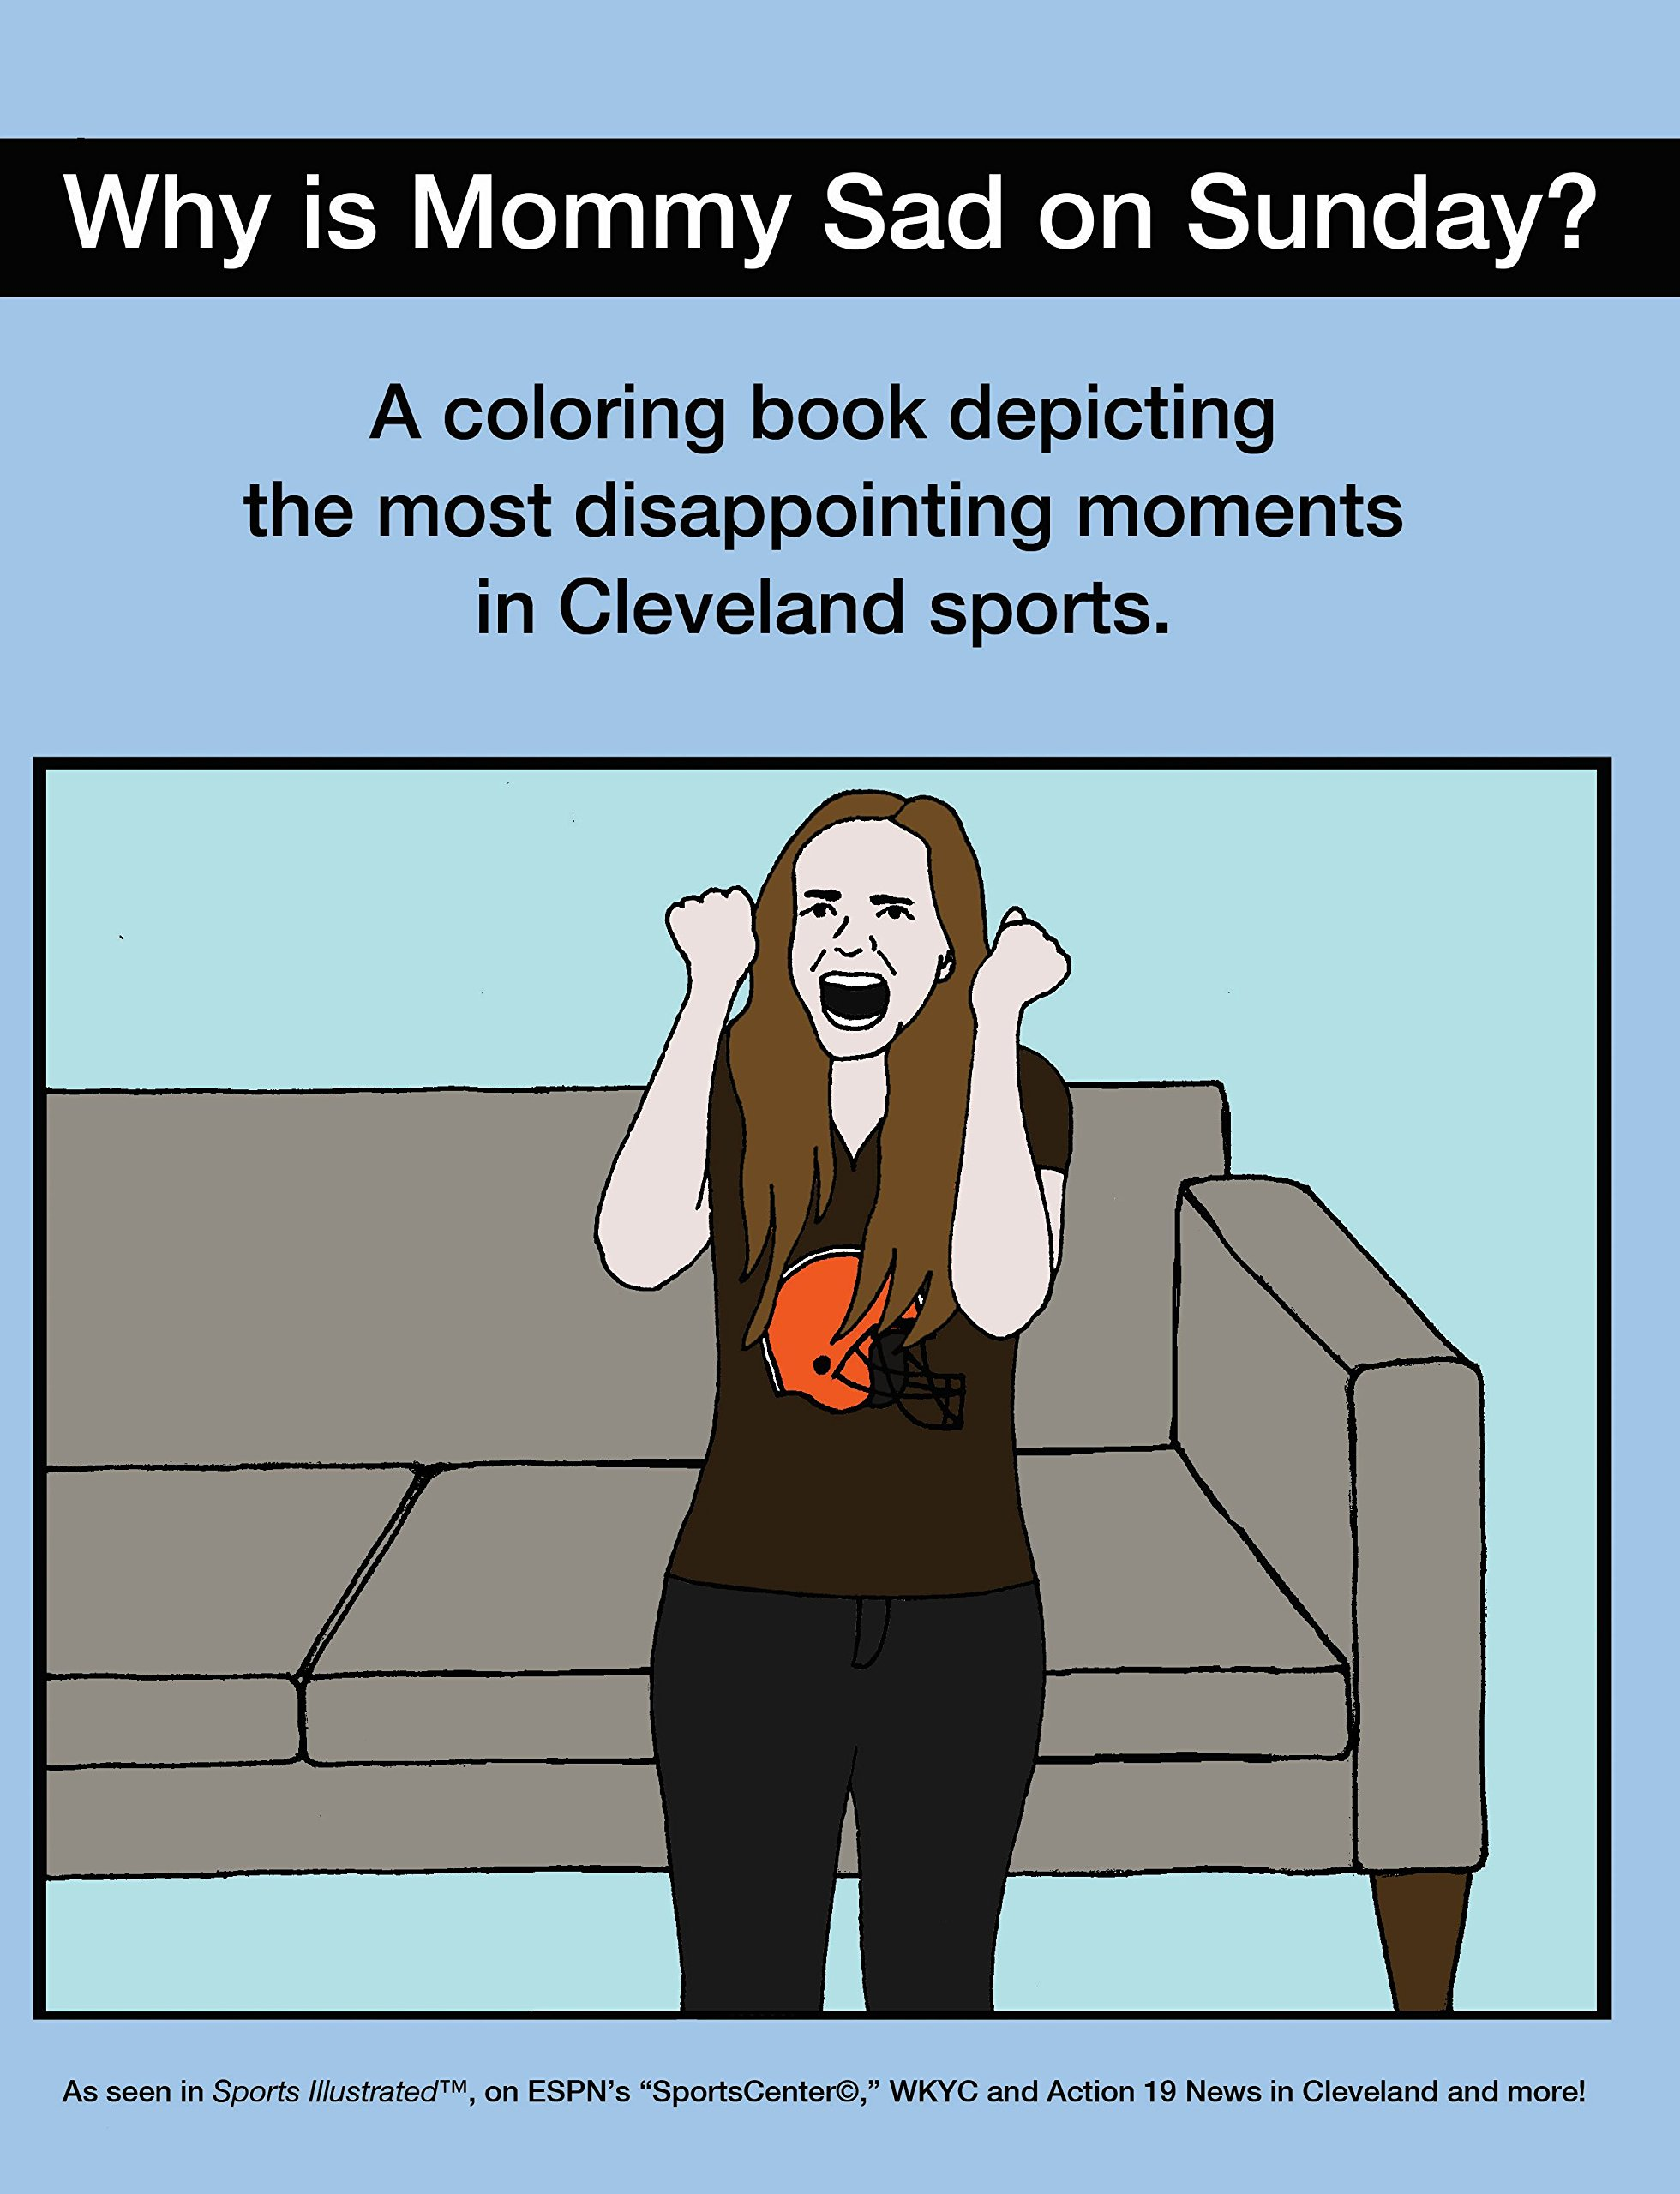 amazoncom why is mommy sad on sunday disappointing moments in cleveland sports coloring book 9781943843220 scott kevin obrien books - Cleveland Sports Coloring Book